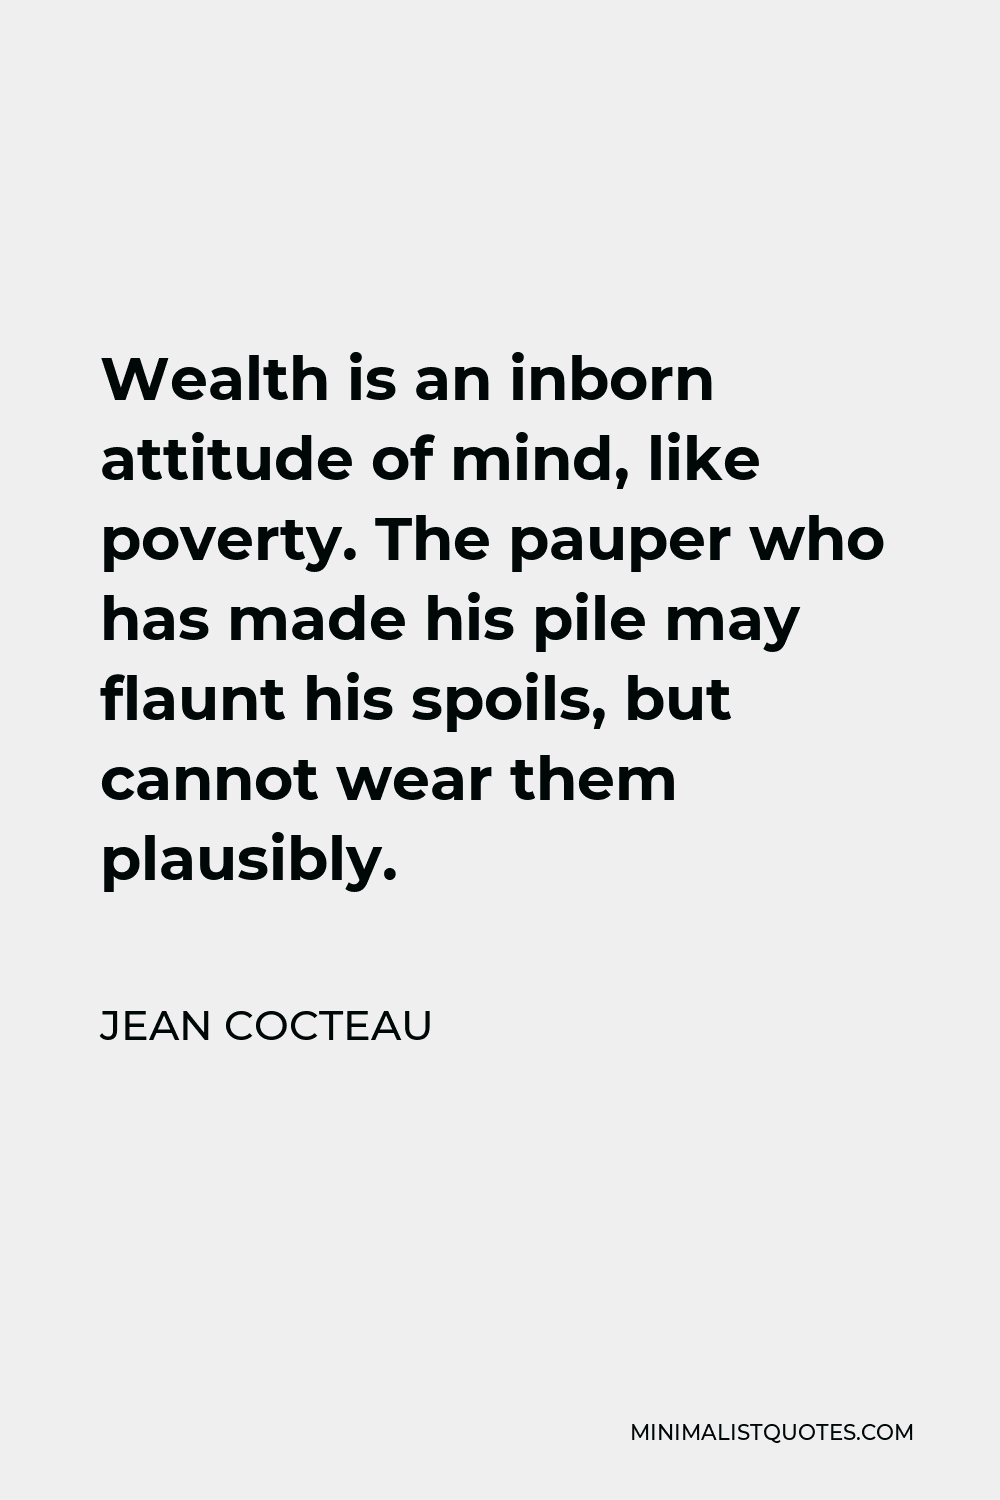 Jean Cocteau Quote - Wealth is an inborn attitude of mind, like poverty. The pauper who has made his pile may flaunt his spoils, but cannot wear them plausibly.